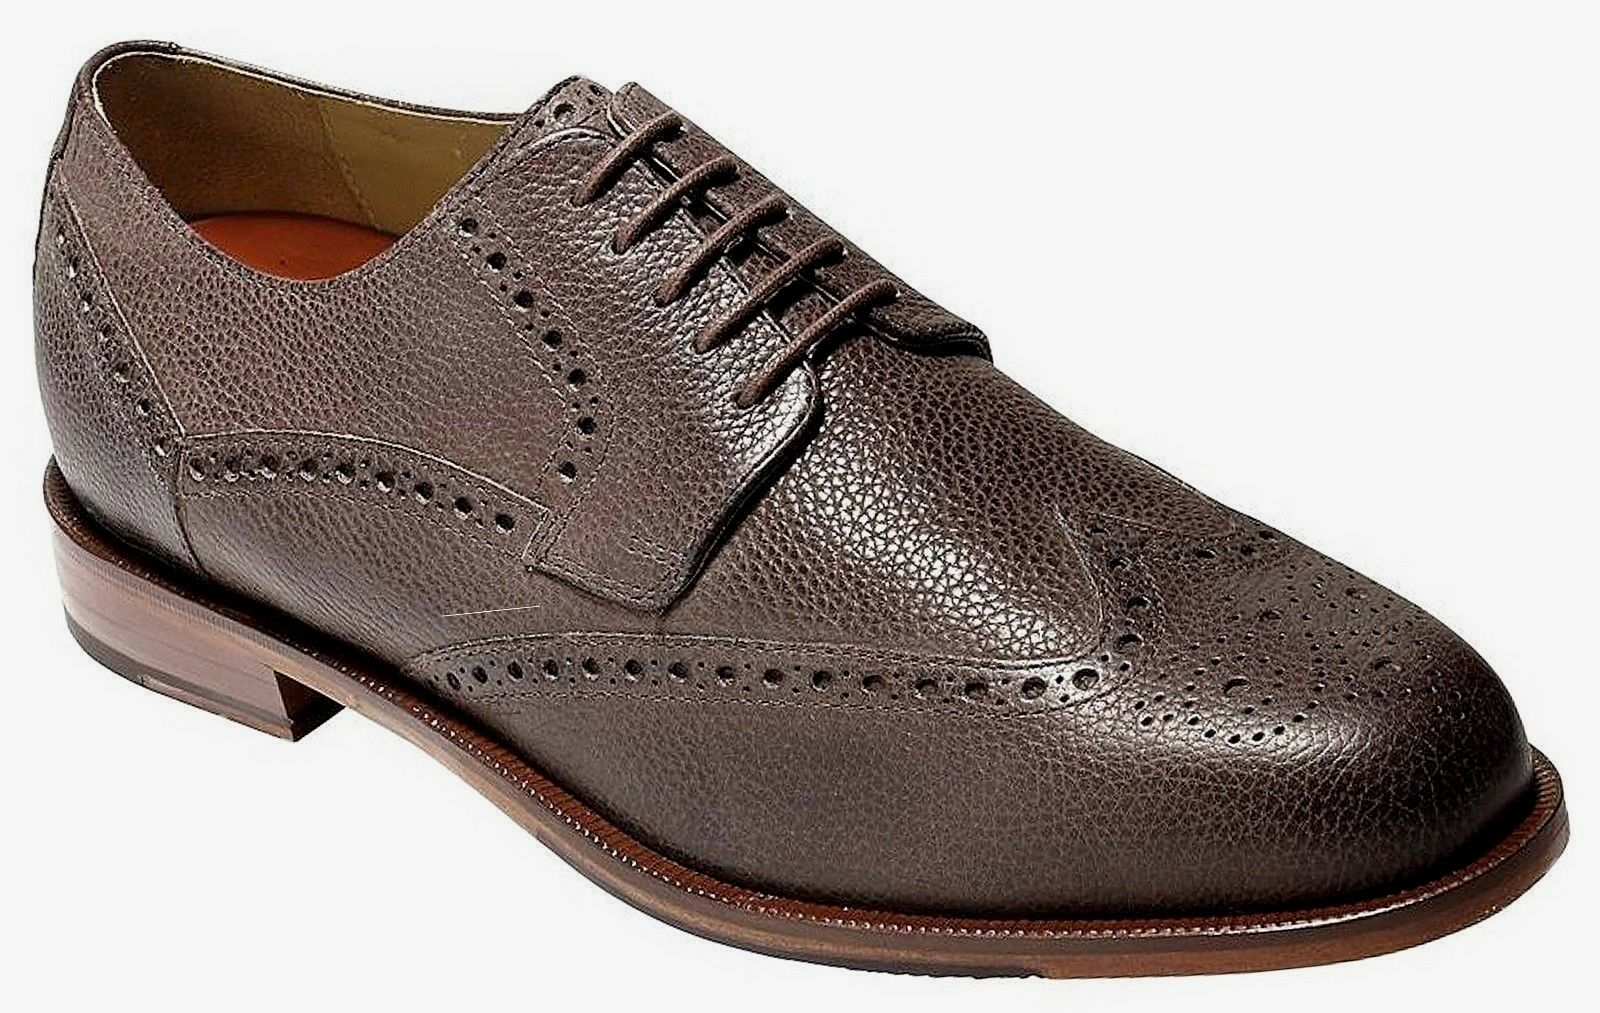 Cole Haan Mens Carter Grand Wing Oxford Dress shoes Chestnut 9 NEW IN BOX